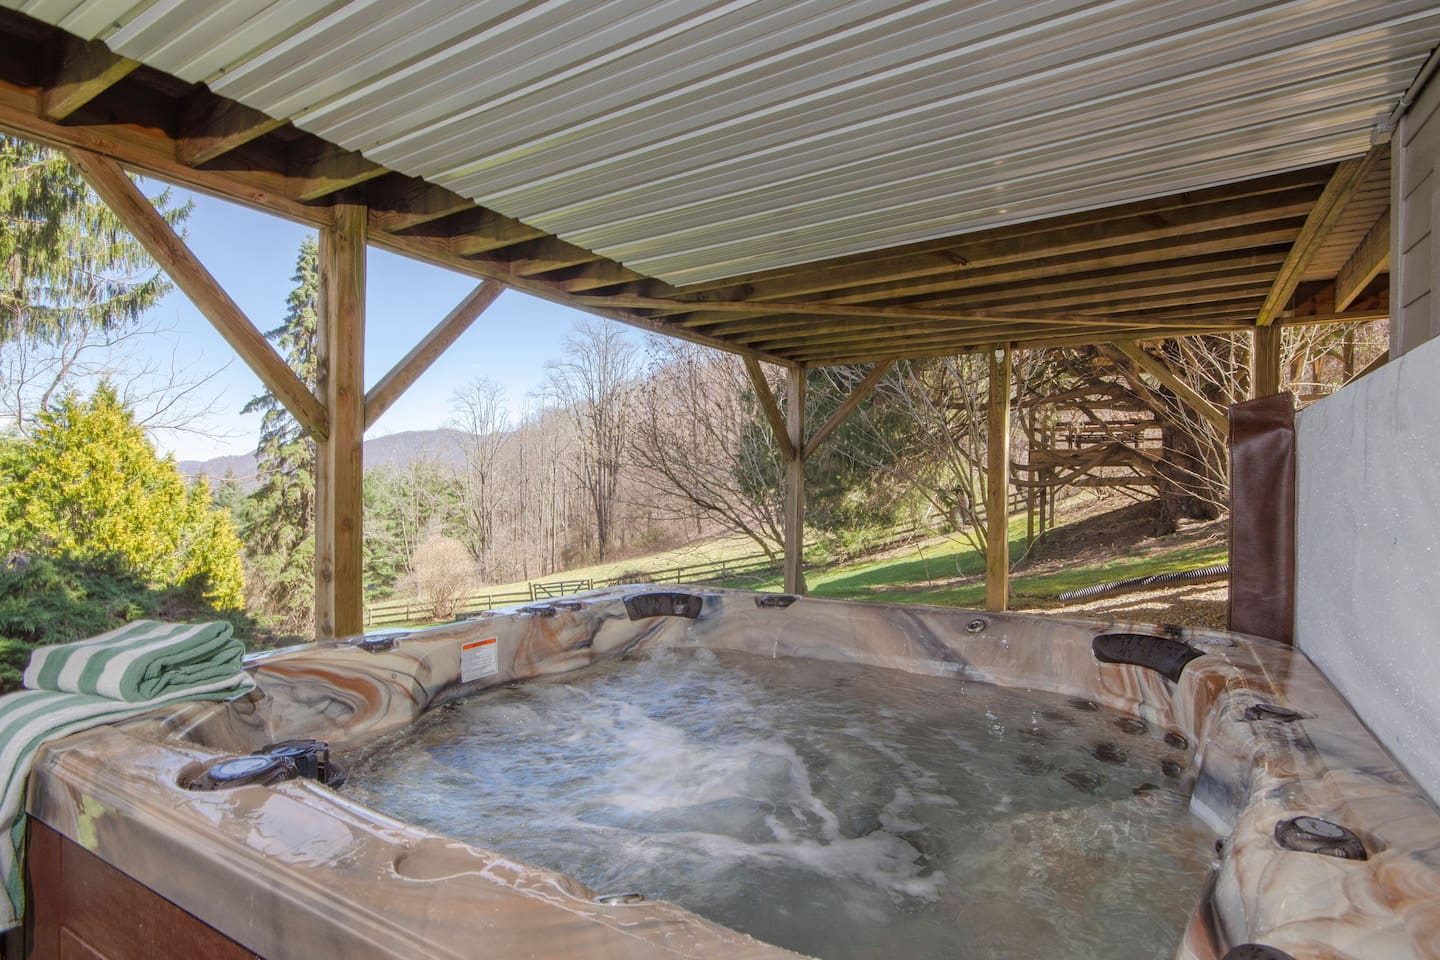 Bubbling 7 person Hot-tub on lower deck with unforgetable mountain views anytime of the day